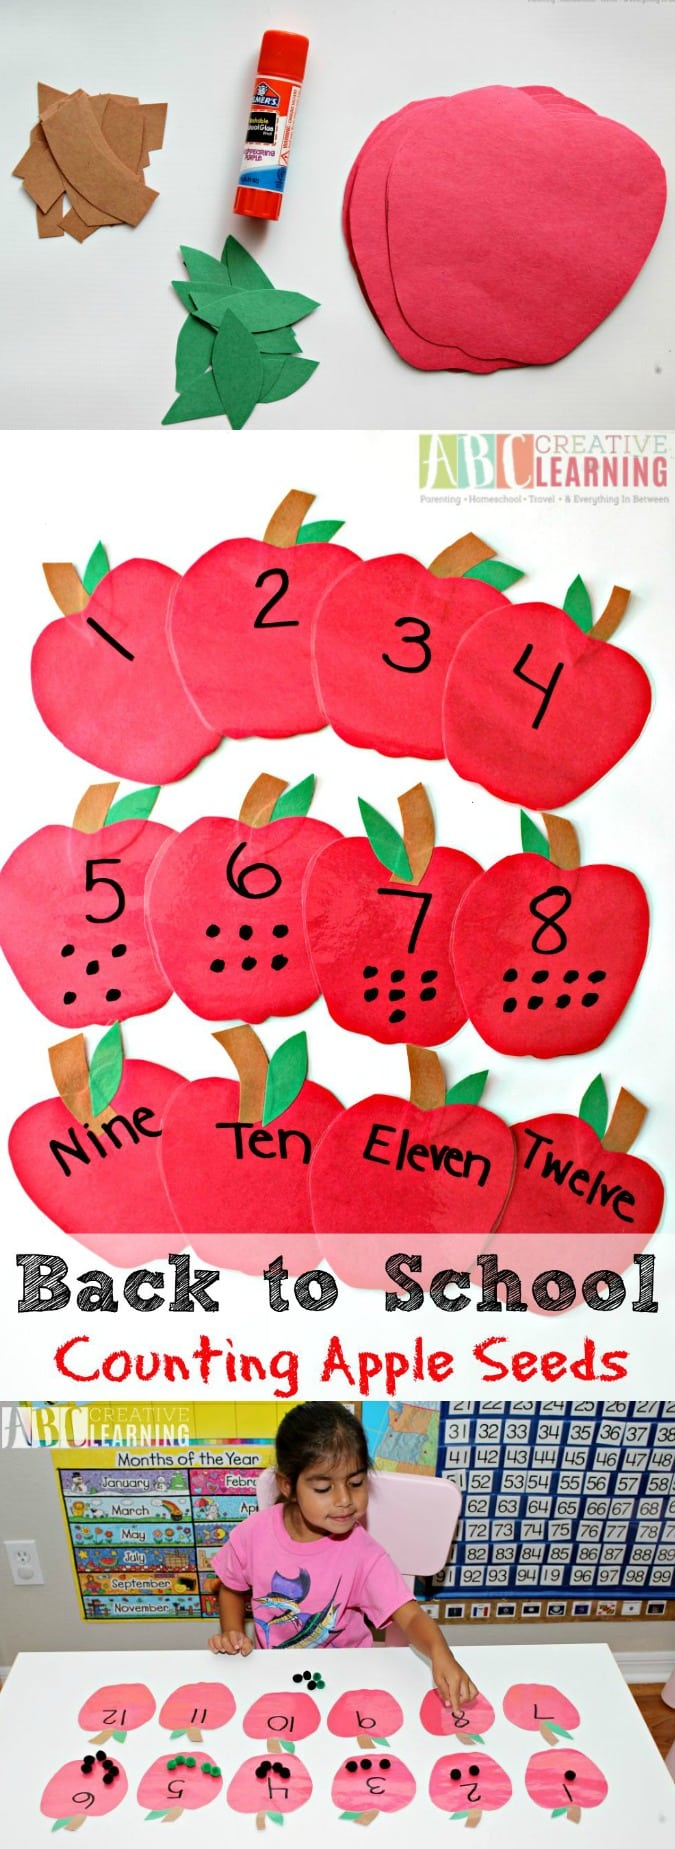 Back to School Counting Apple Seeds